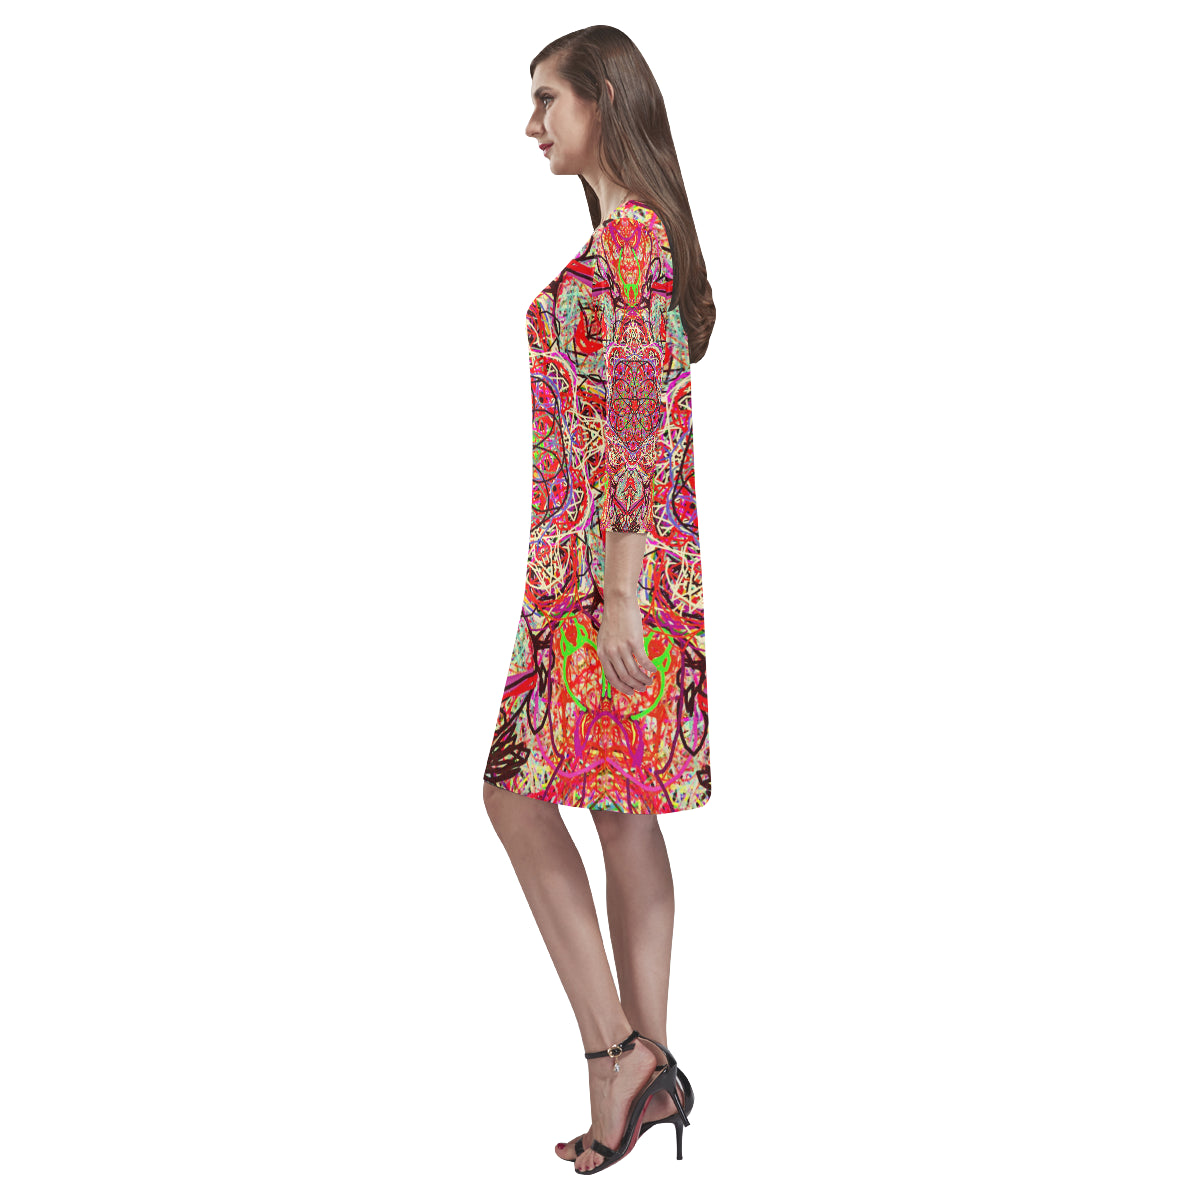 Thleudron Women'sThe Ring Rhea Loose Round Neck Dress(Model D22) - Thleudron